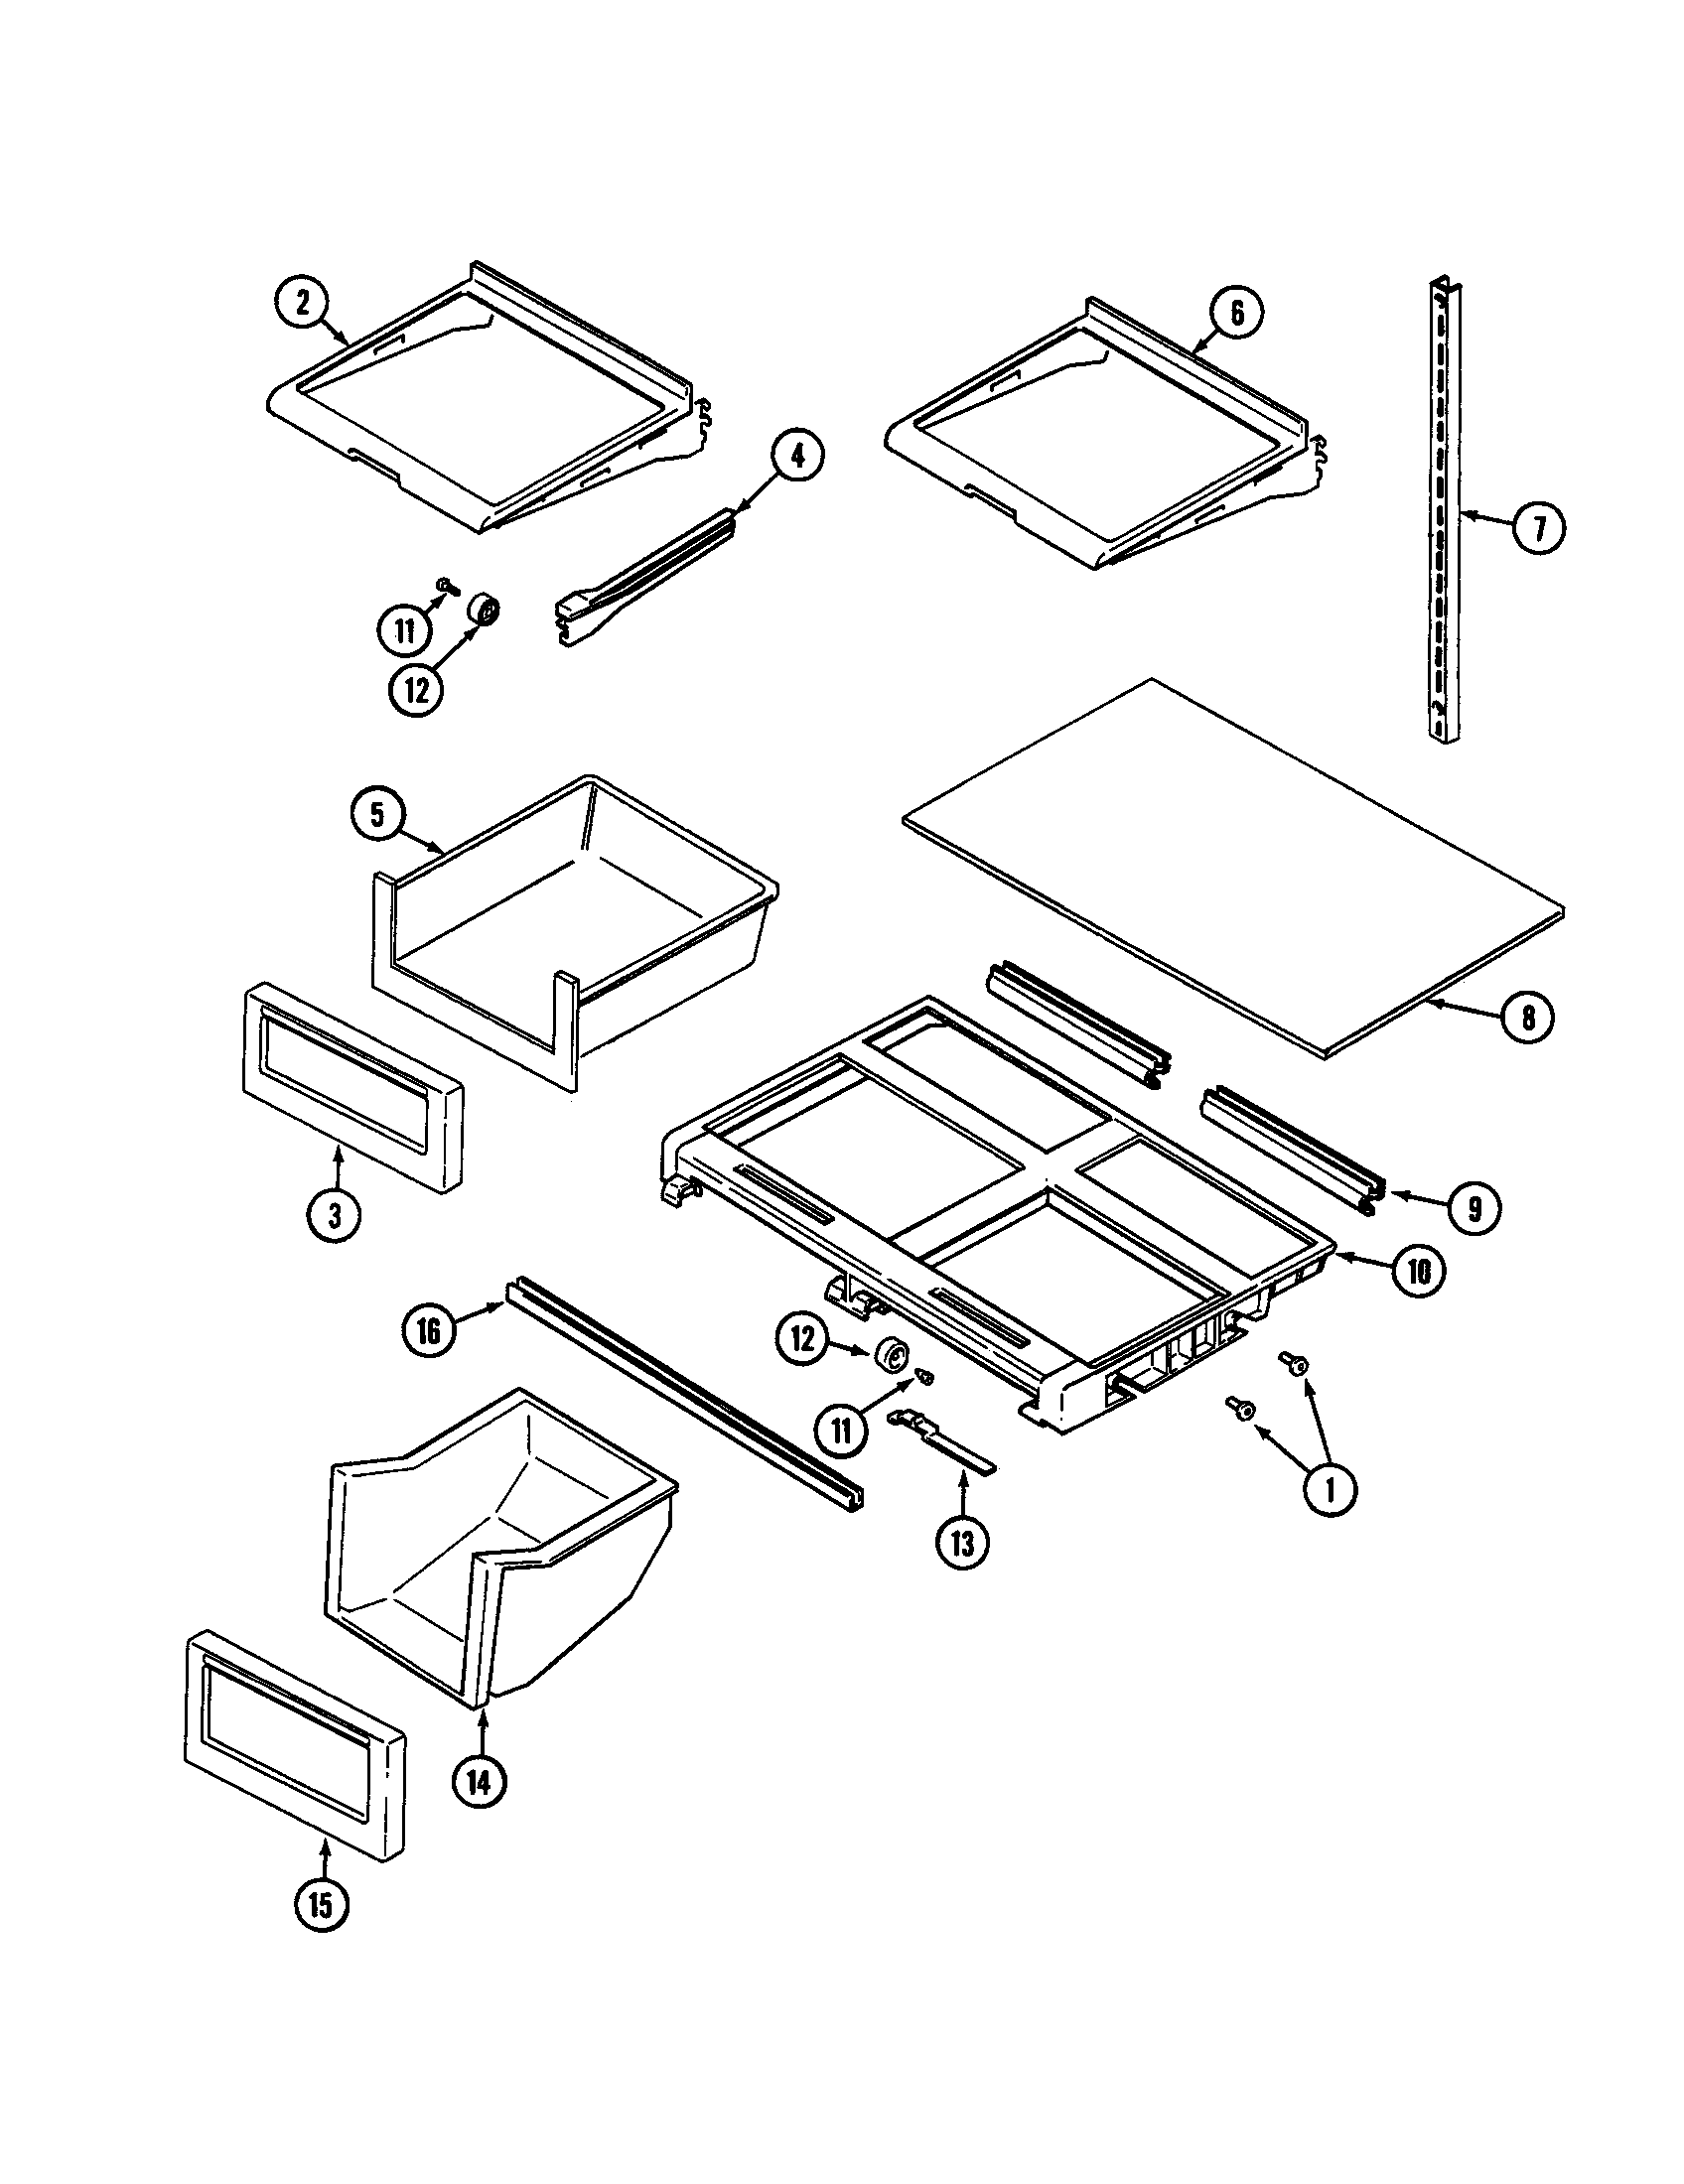 Maytag MTB1954DRW shelves and accessories diagram